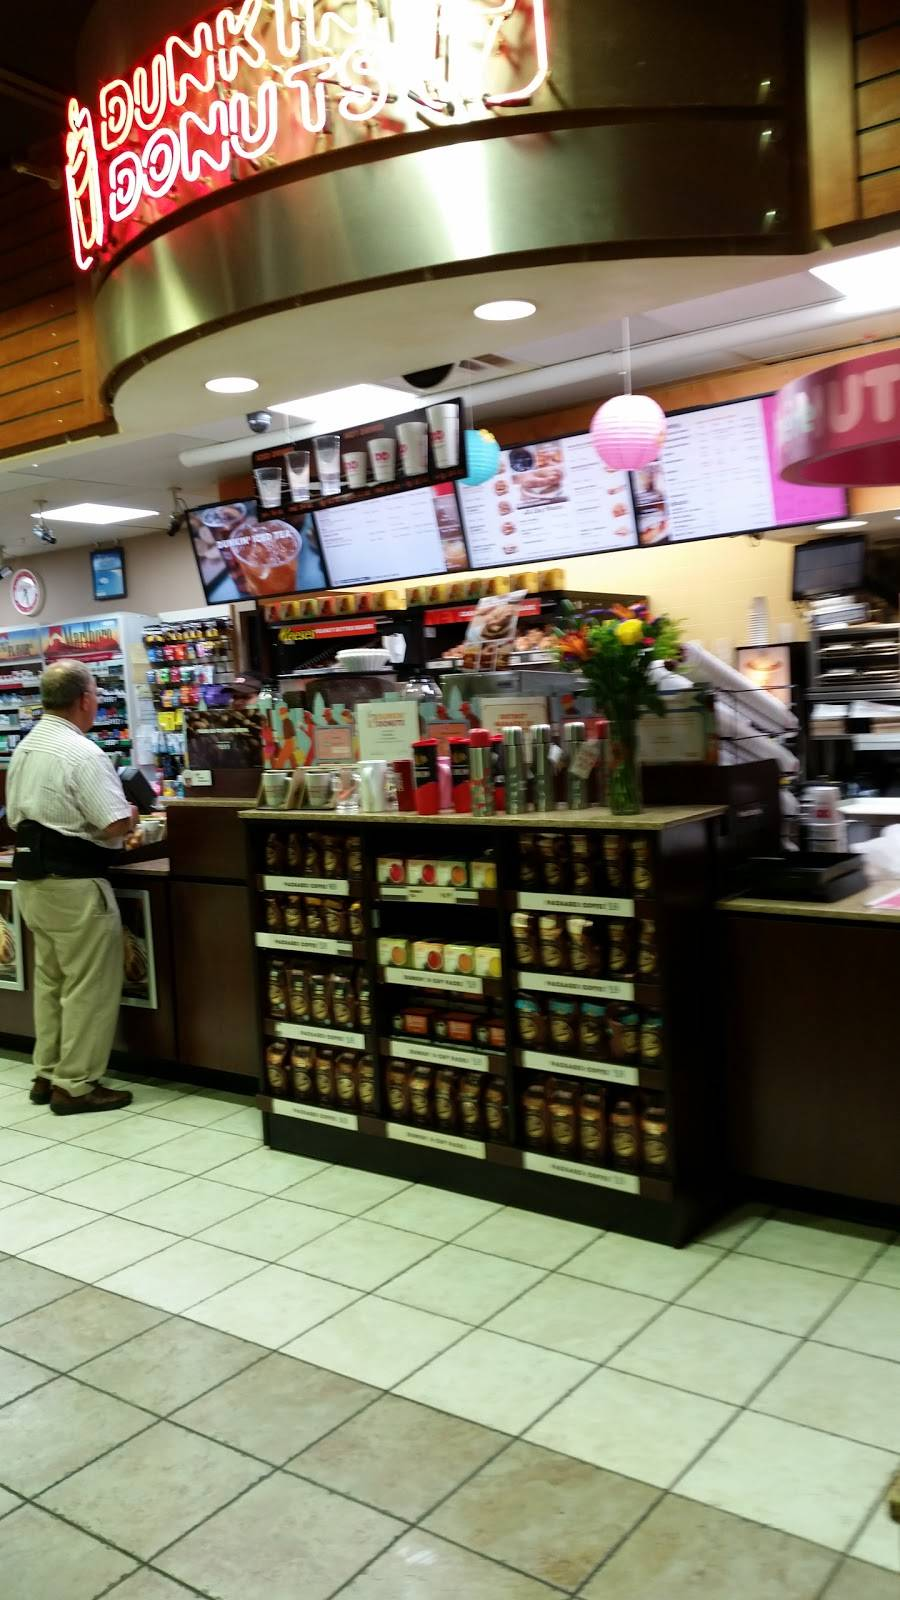 Dunkin Donuts | cafe | 7235 N Caldwell Ave, Niles, IL 60714, USA | 8476479474 OR +1 847-647-9474